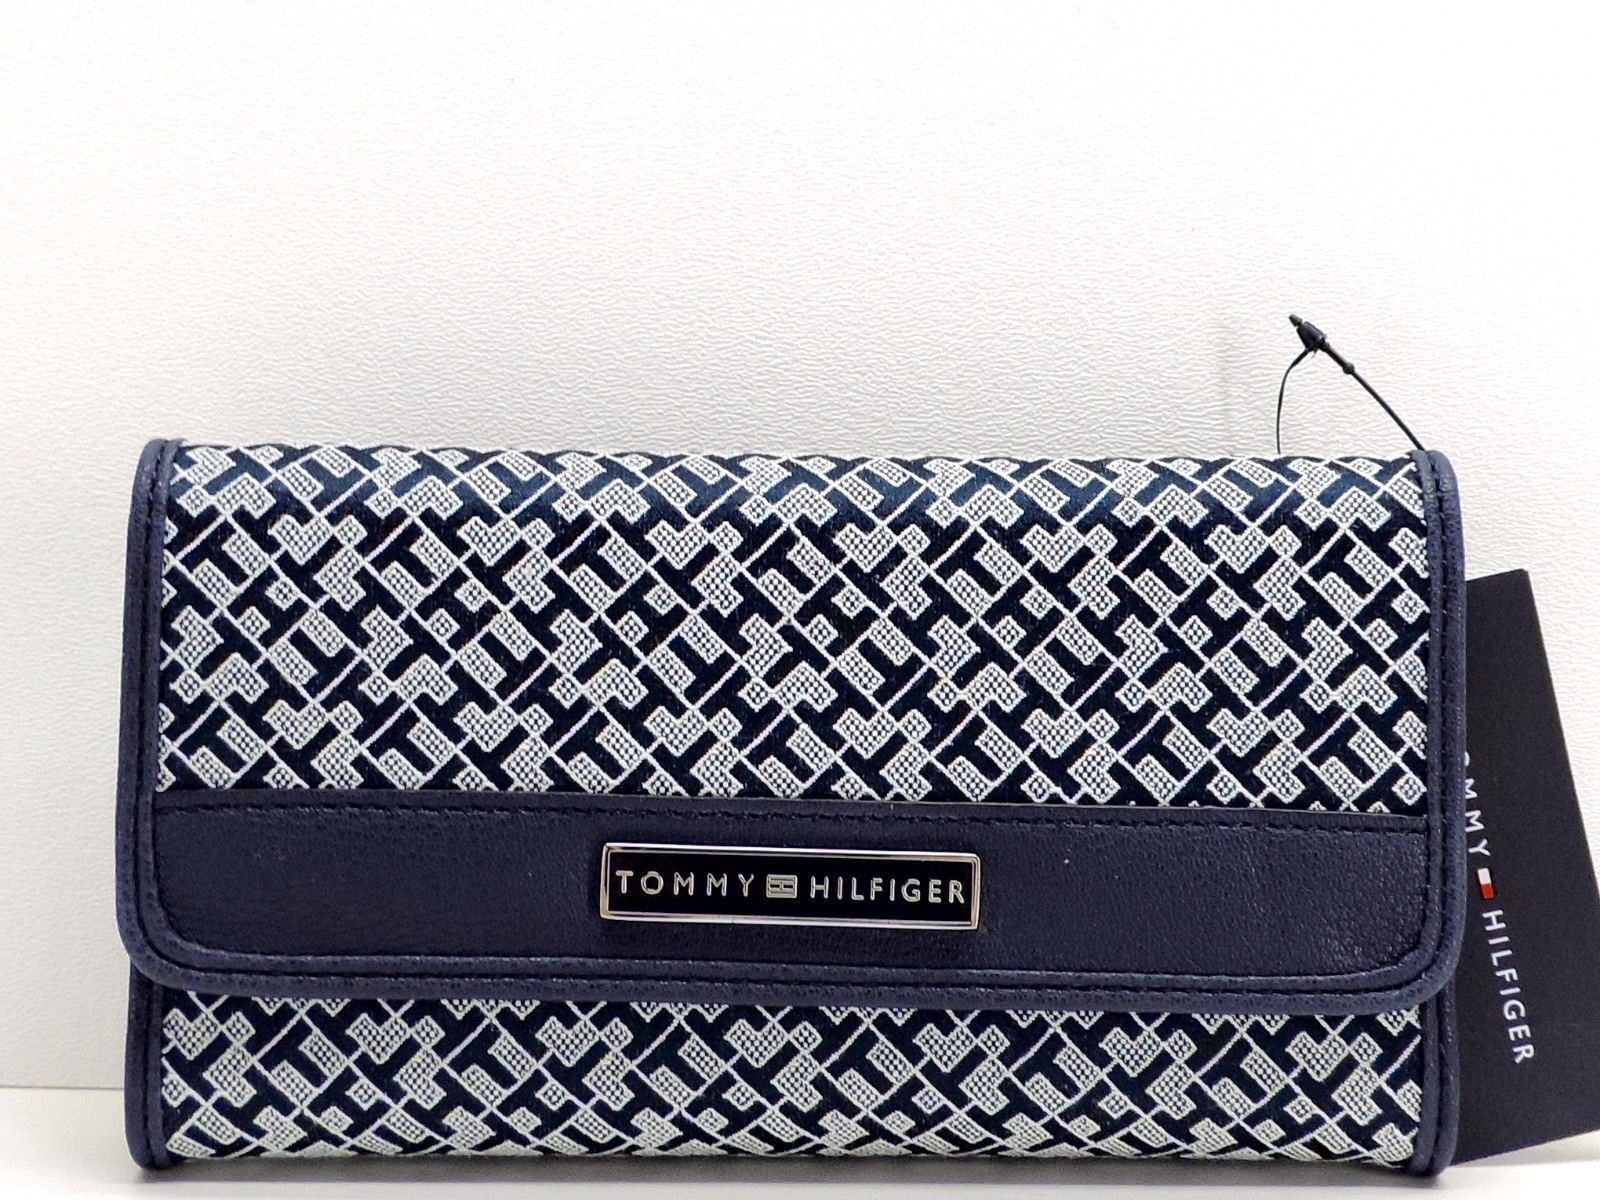 12fe9acfc7 Tommy Hilfiger Womens Wallet (Blue and white) | Tommy Hilfiger ...